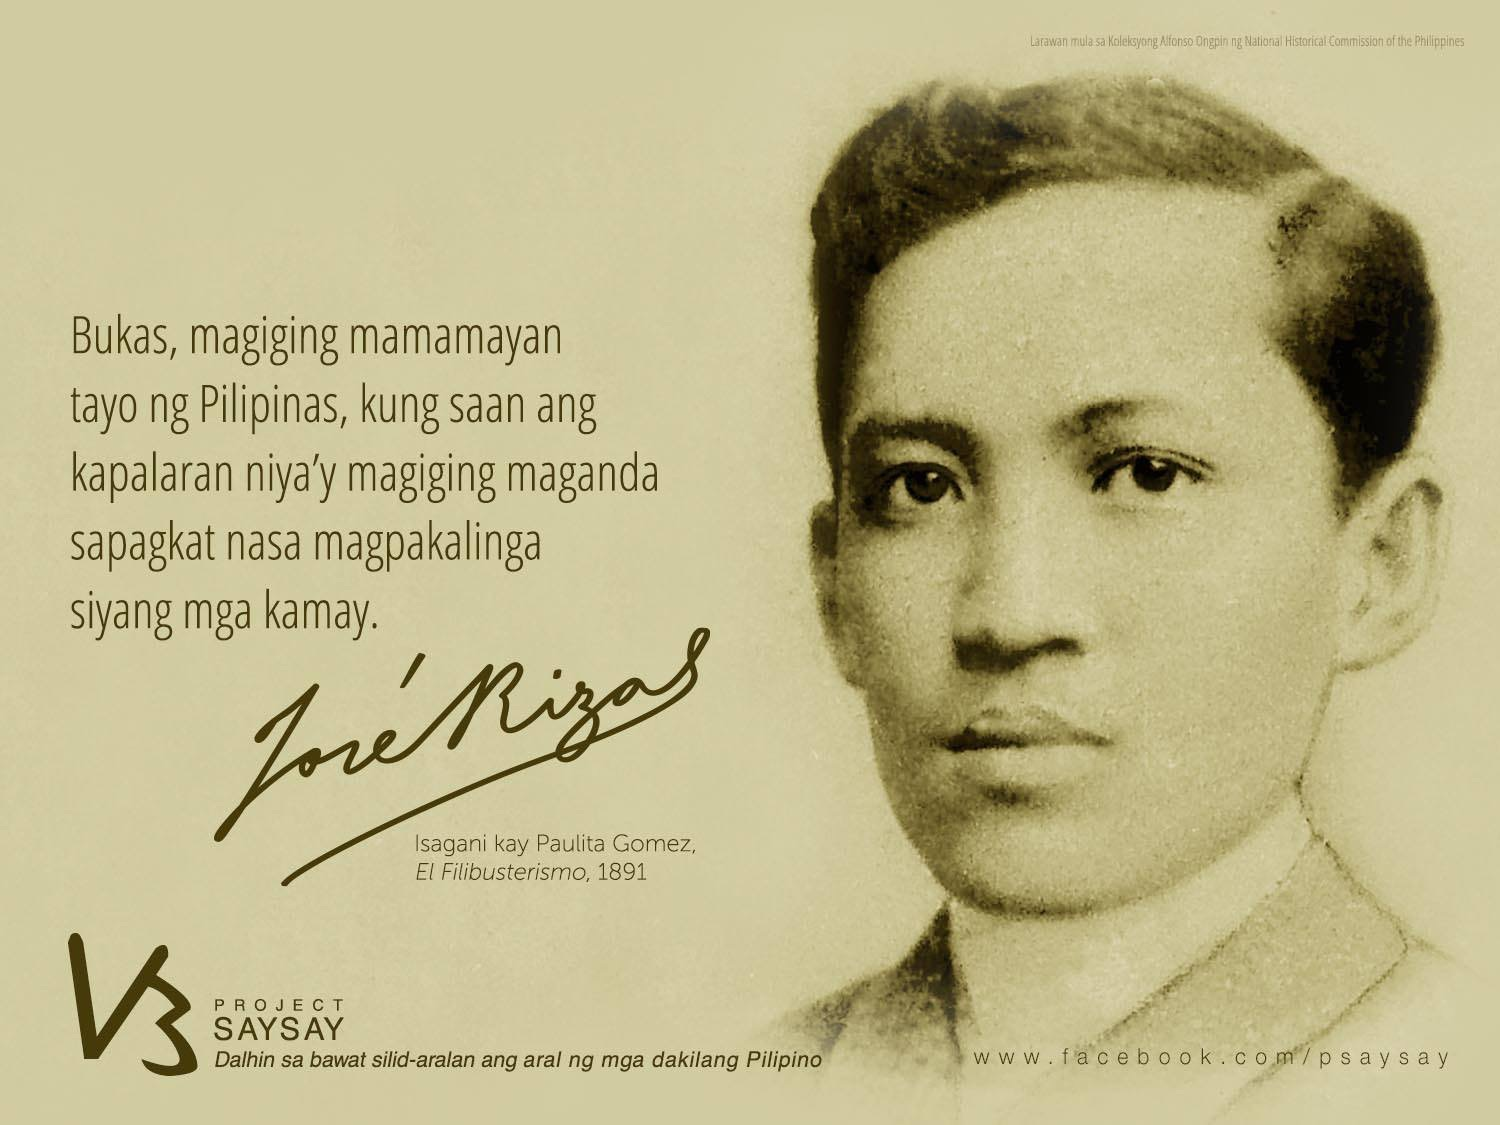 jose rizal essays Rizal wrote this essay way back in the 19th century, can you imagine how applicable it is up until now the youth will only be the fair hope of the let's treat our youth, the way jose rizal is treated, he had his first lesson in their home and it is given by her mother we should keep in mind, that without us it.